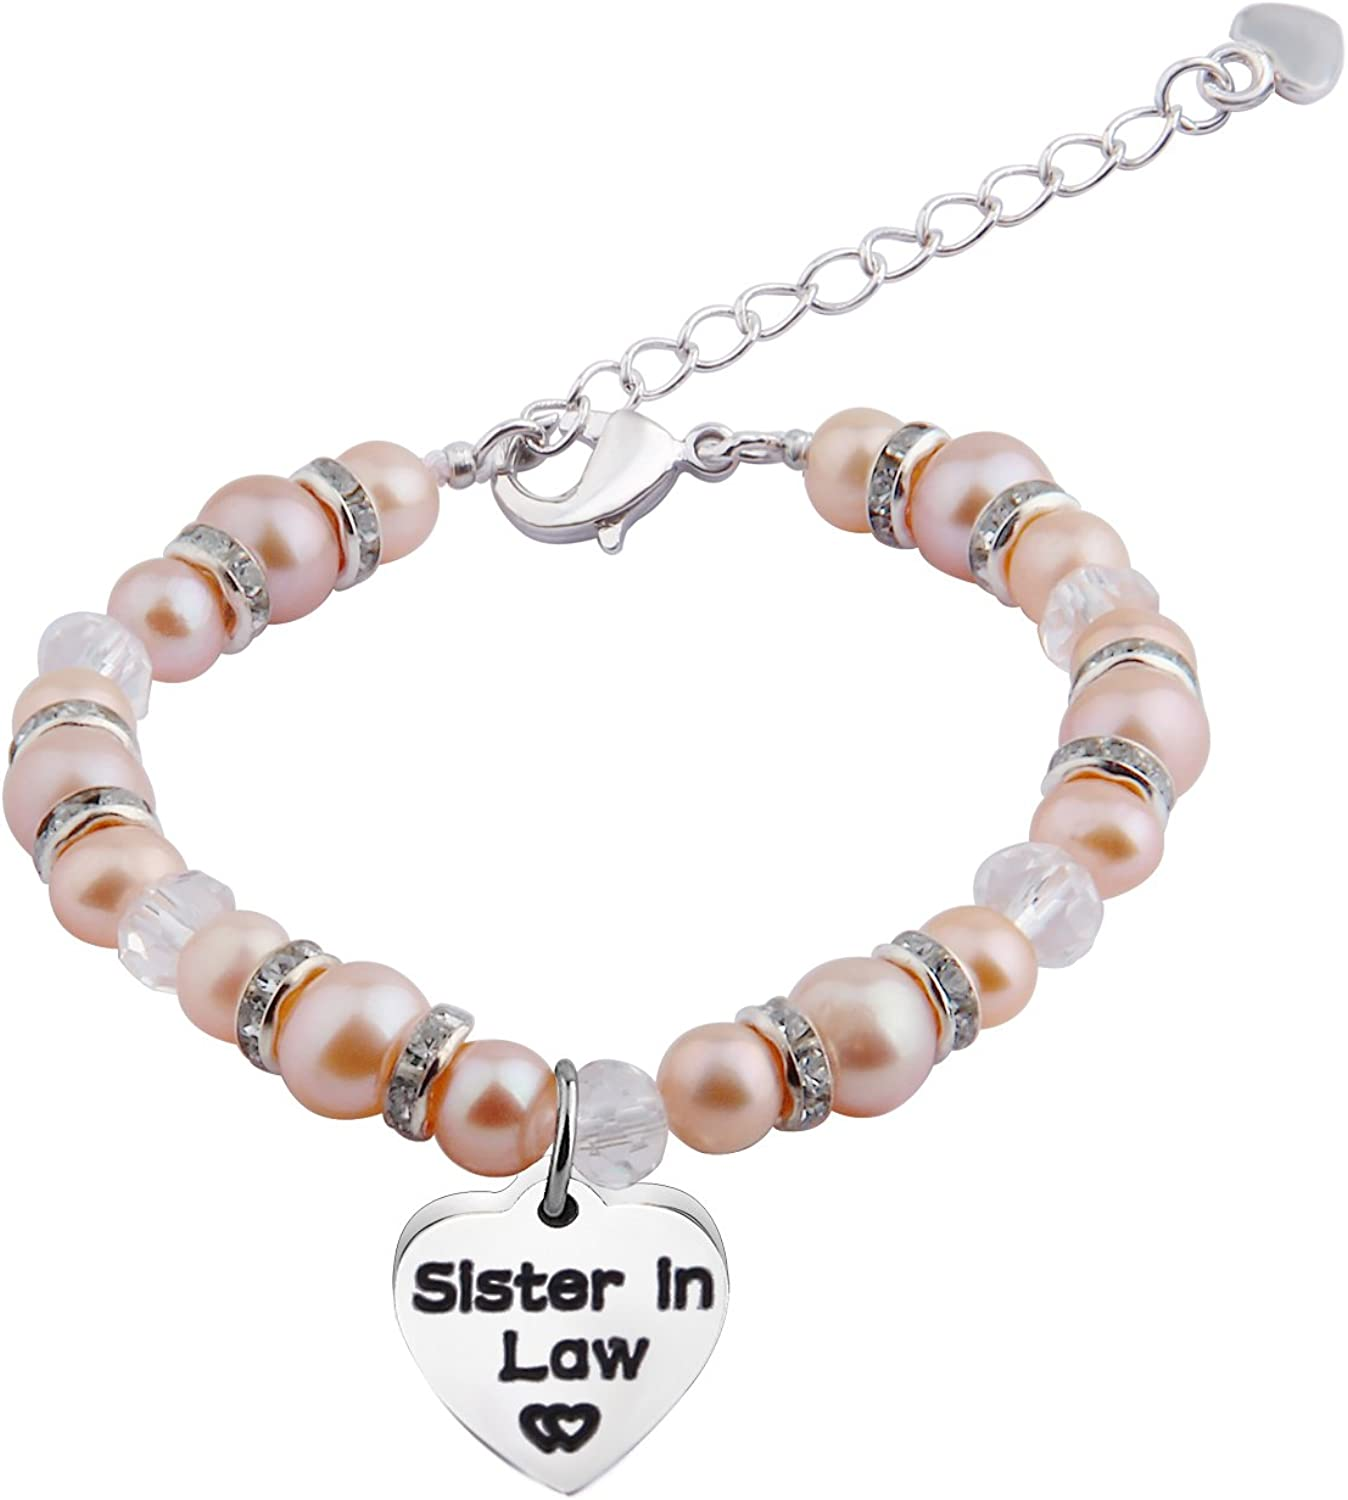 Zuo Bao Sister in Law Bracelet Nature Pearl Bracelet Wedding Jewelry Gifts for Her